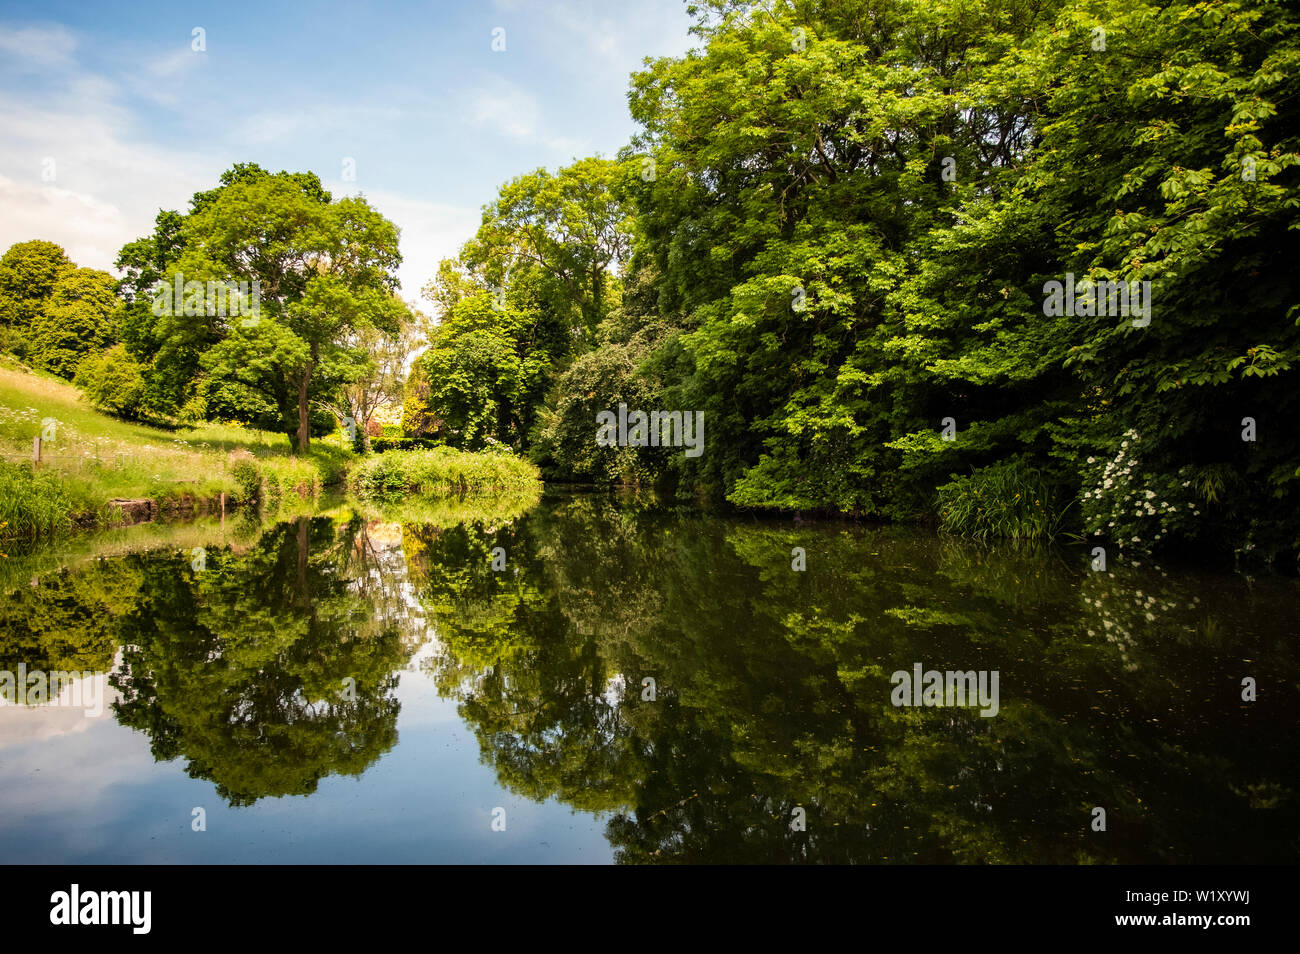 Alte Sneed Park Nature Reserve, Sneyd Park, Bristol Stockfoto